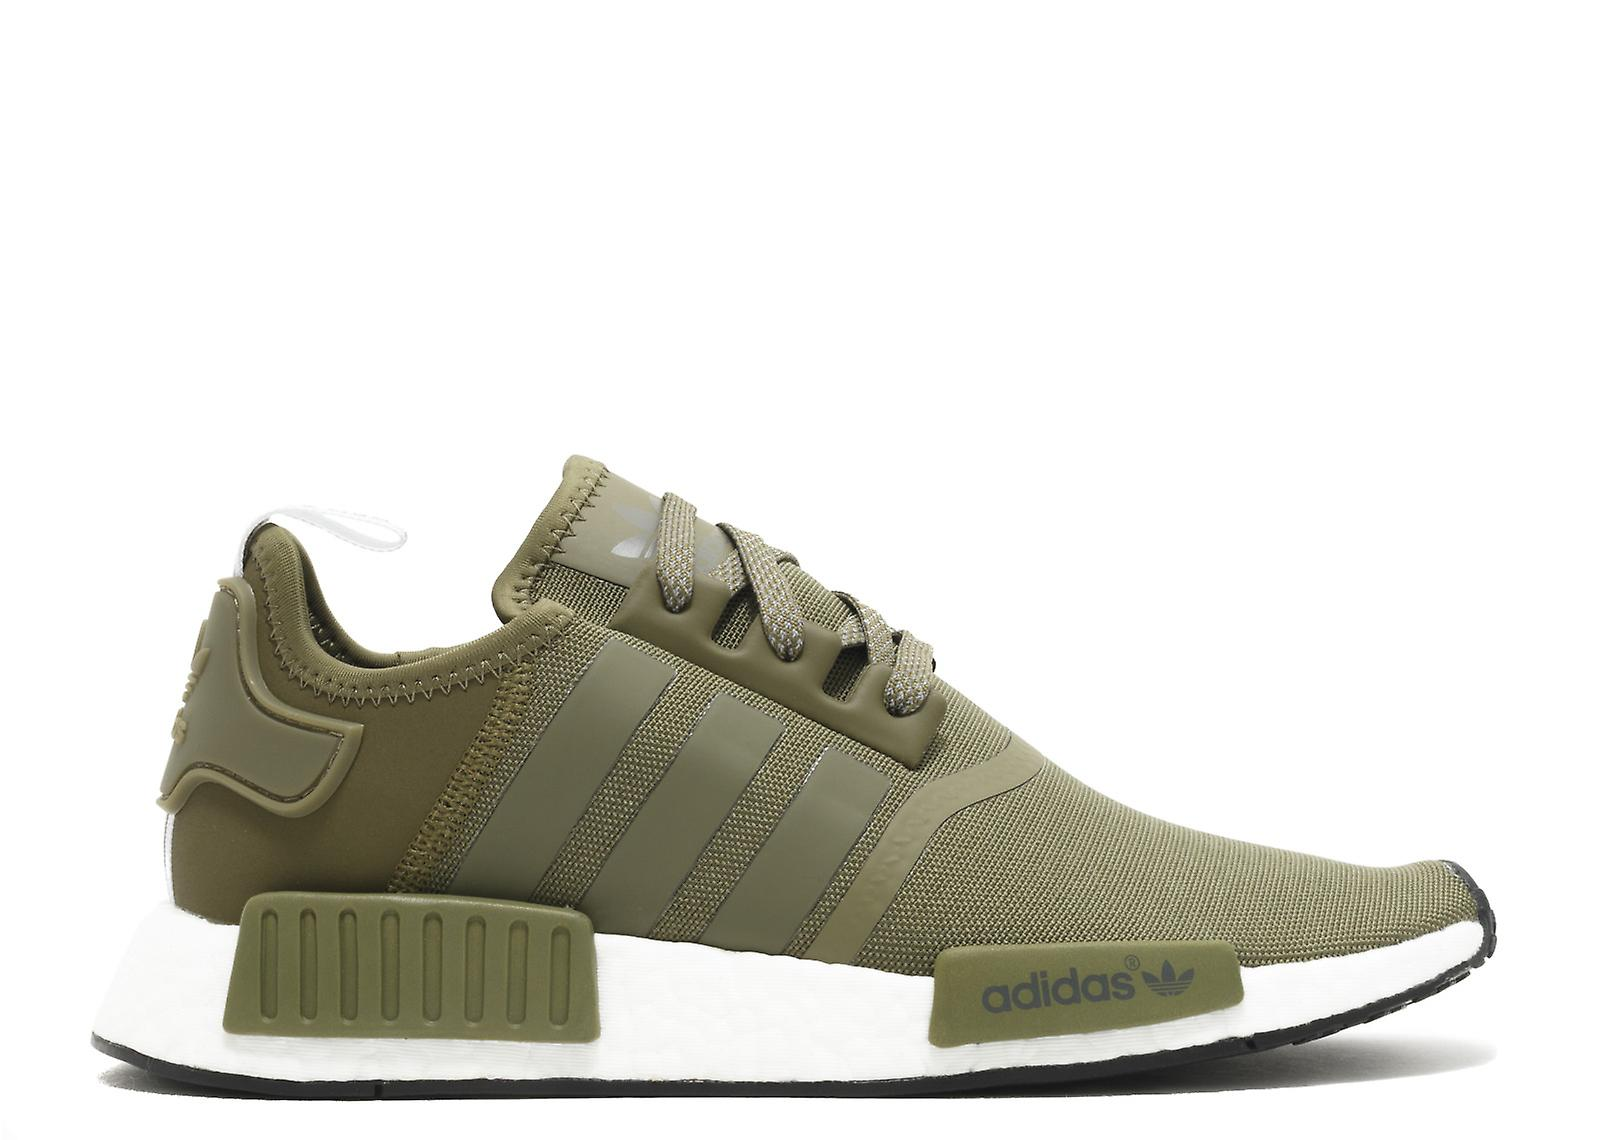 NMD R1 'Oliva Cargo' - By2504 - scarpe dCL3vV